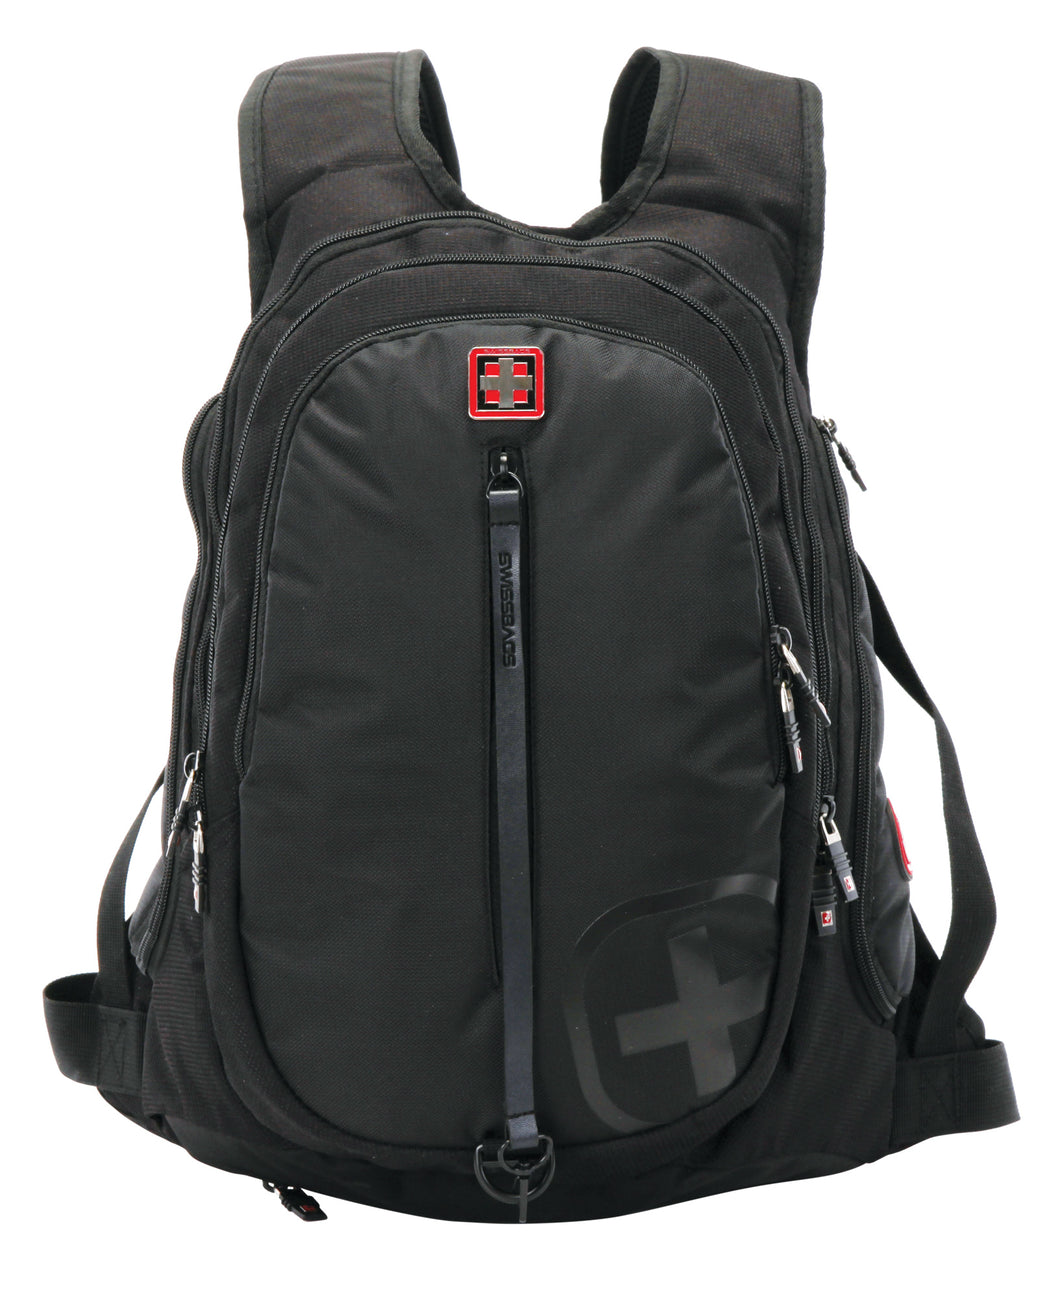 Crans-Montana Backpack by SwissBags